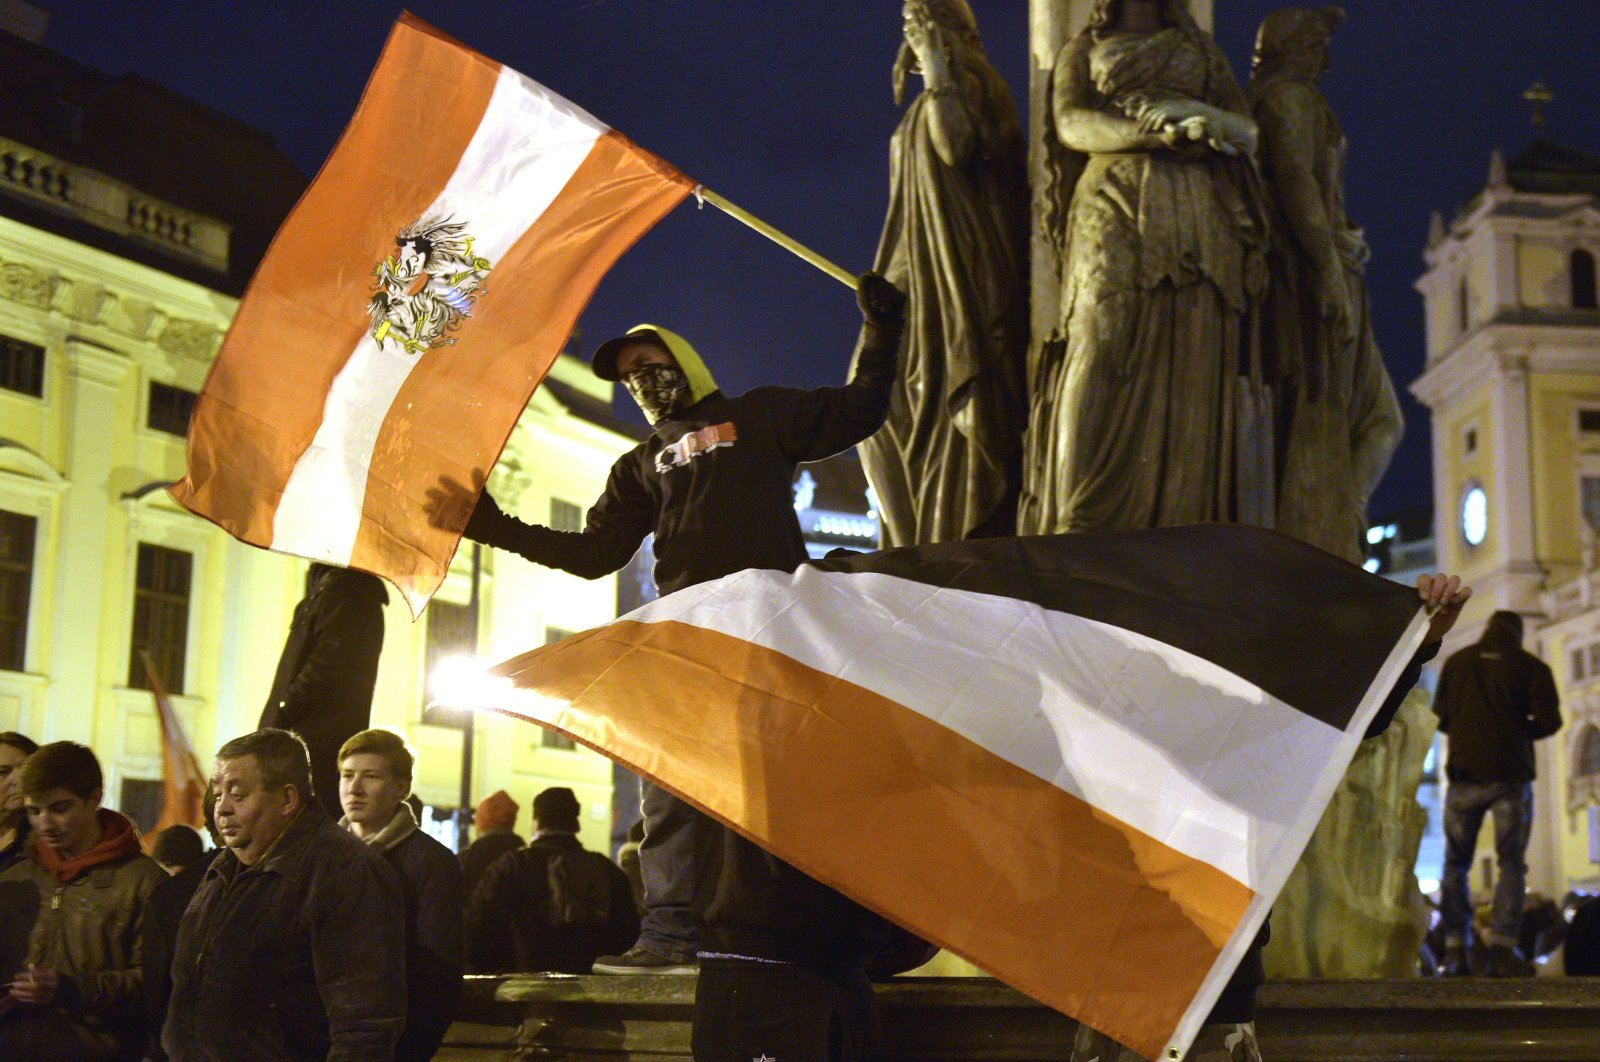 Demonstrators wave flags during a rally of the Patriotic Europeans group, Vienna, Austria, Feb. 2, 2015. (AP Photo)